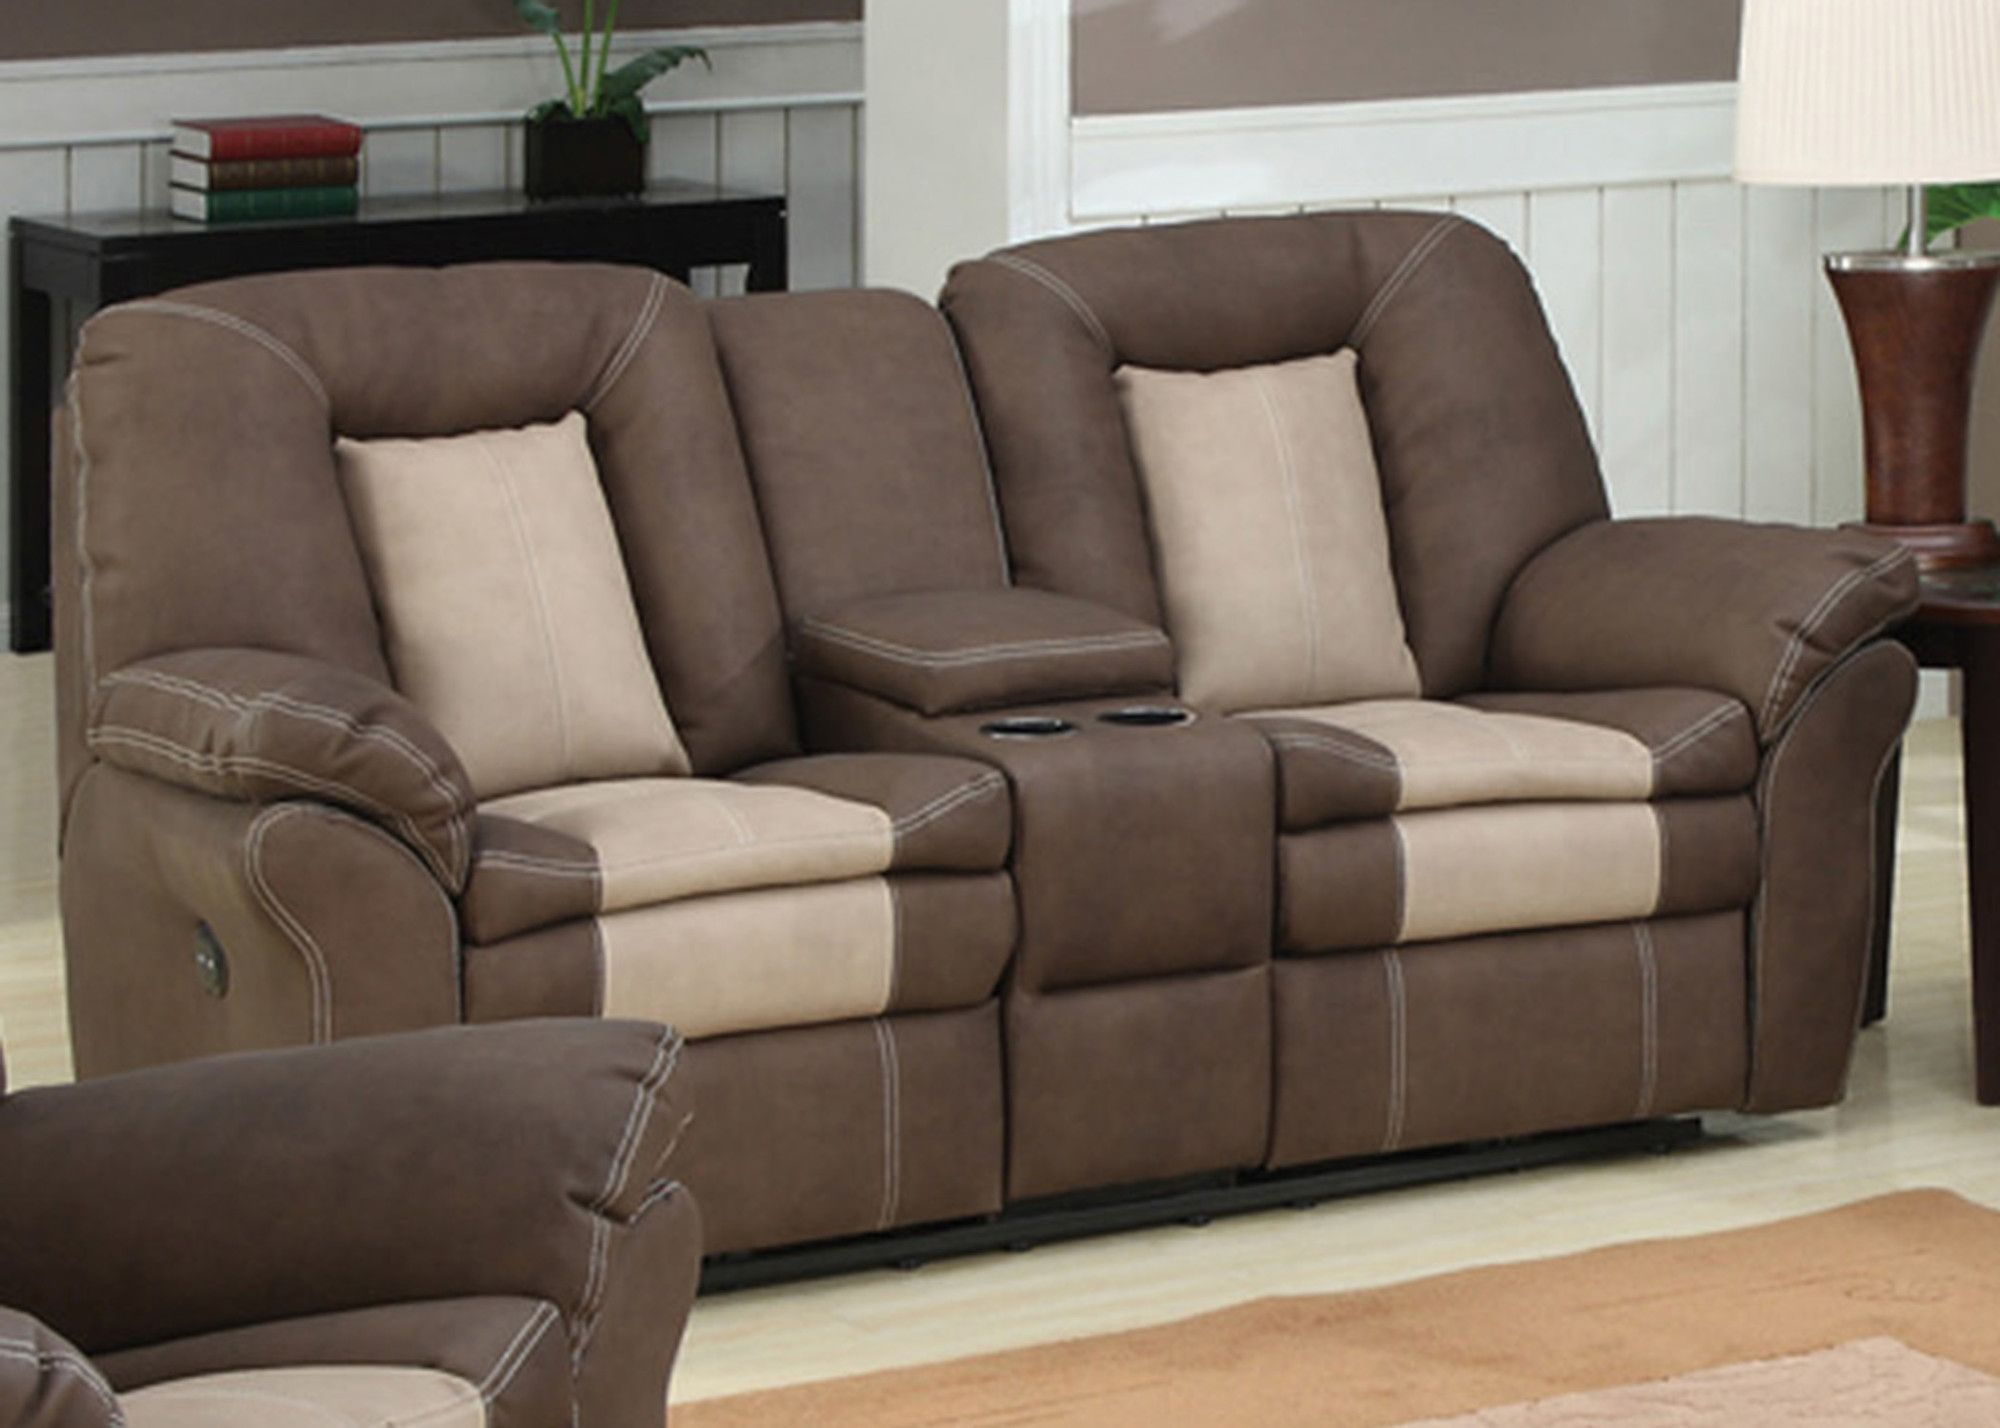 Living Room Loveseats Carson Plush Living Room Dual Reclining Sofa Loveseats Living